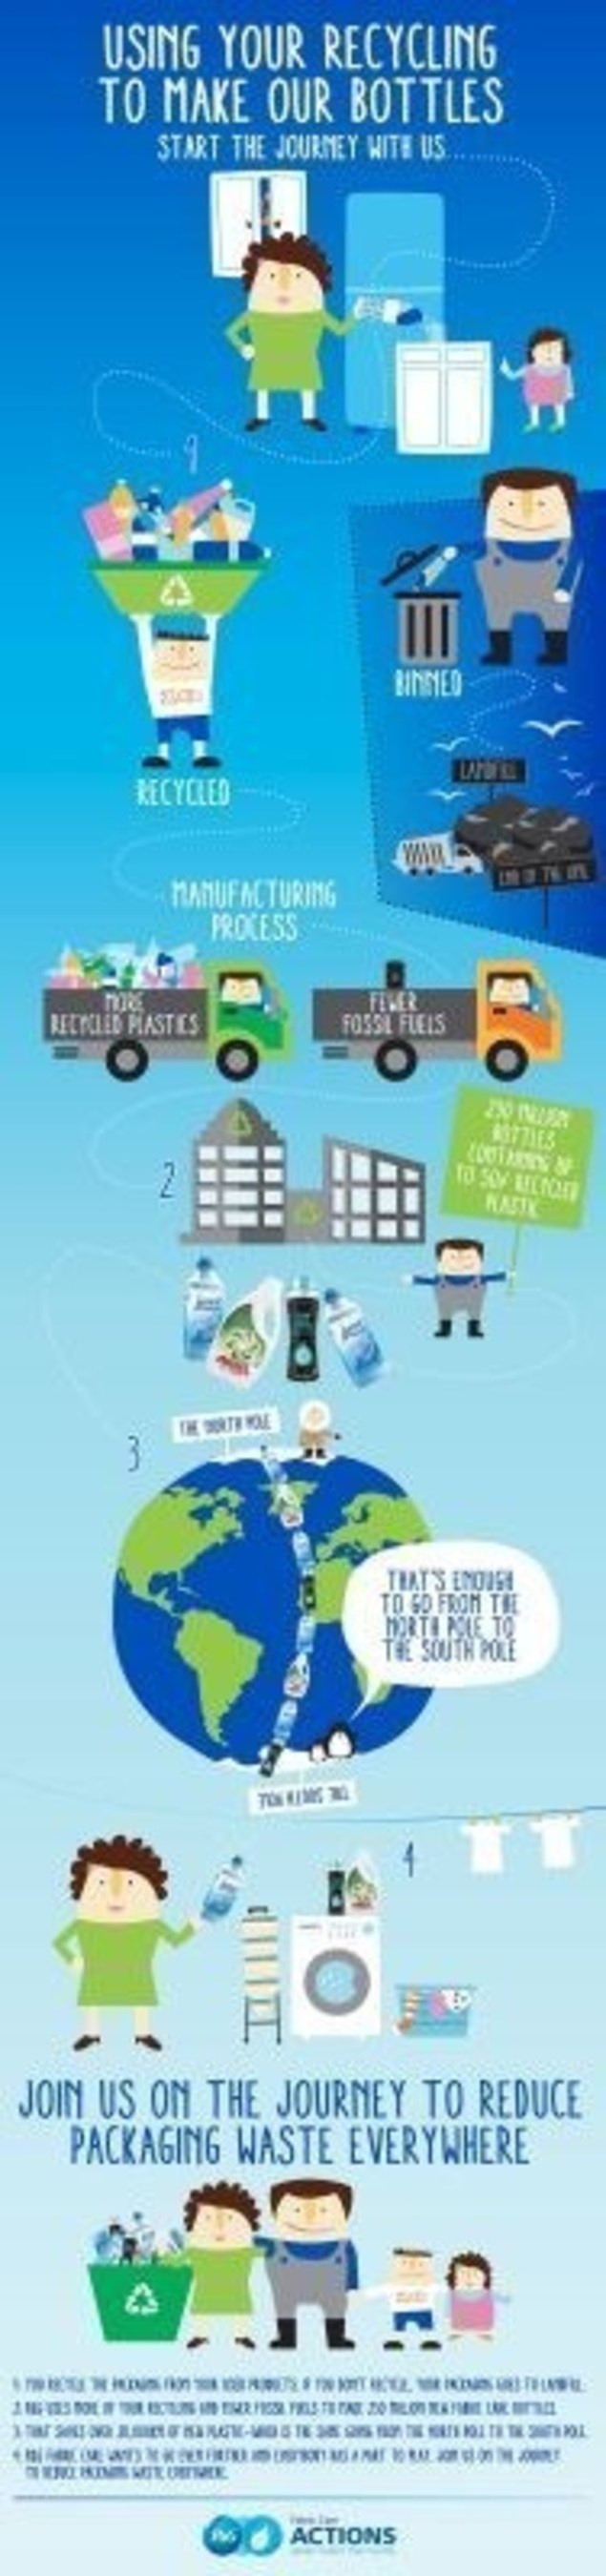 Procter & Gamble Fabric Care Overhauls Packaging to Make 230 Million Bottles a Year out of Recycled Plastic ...